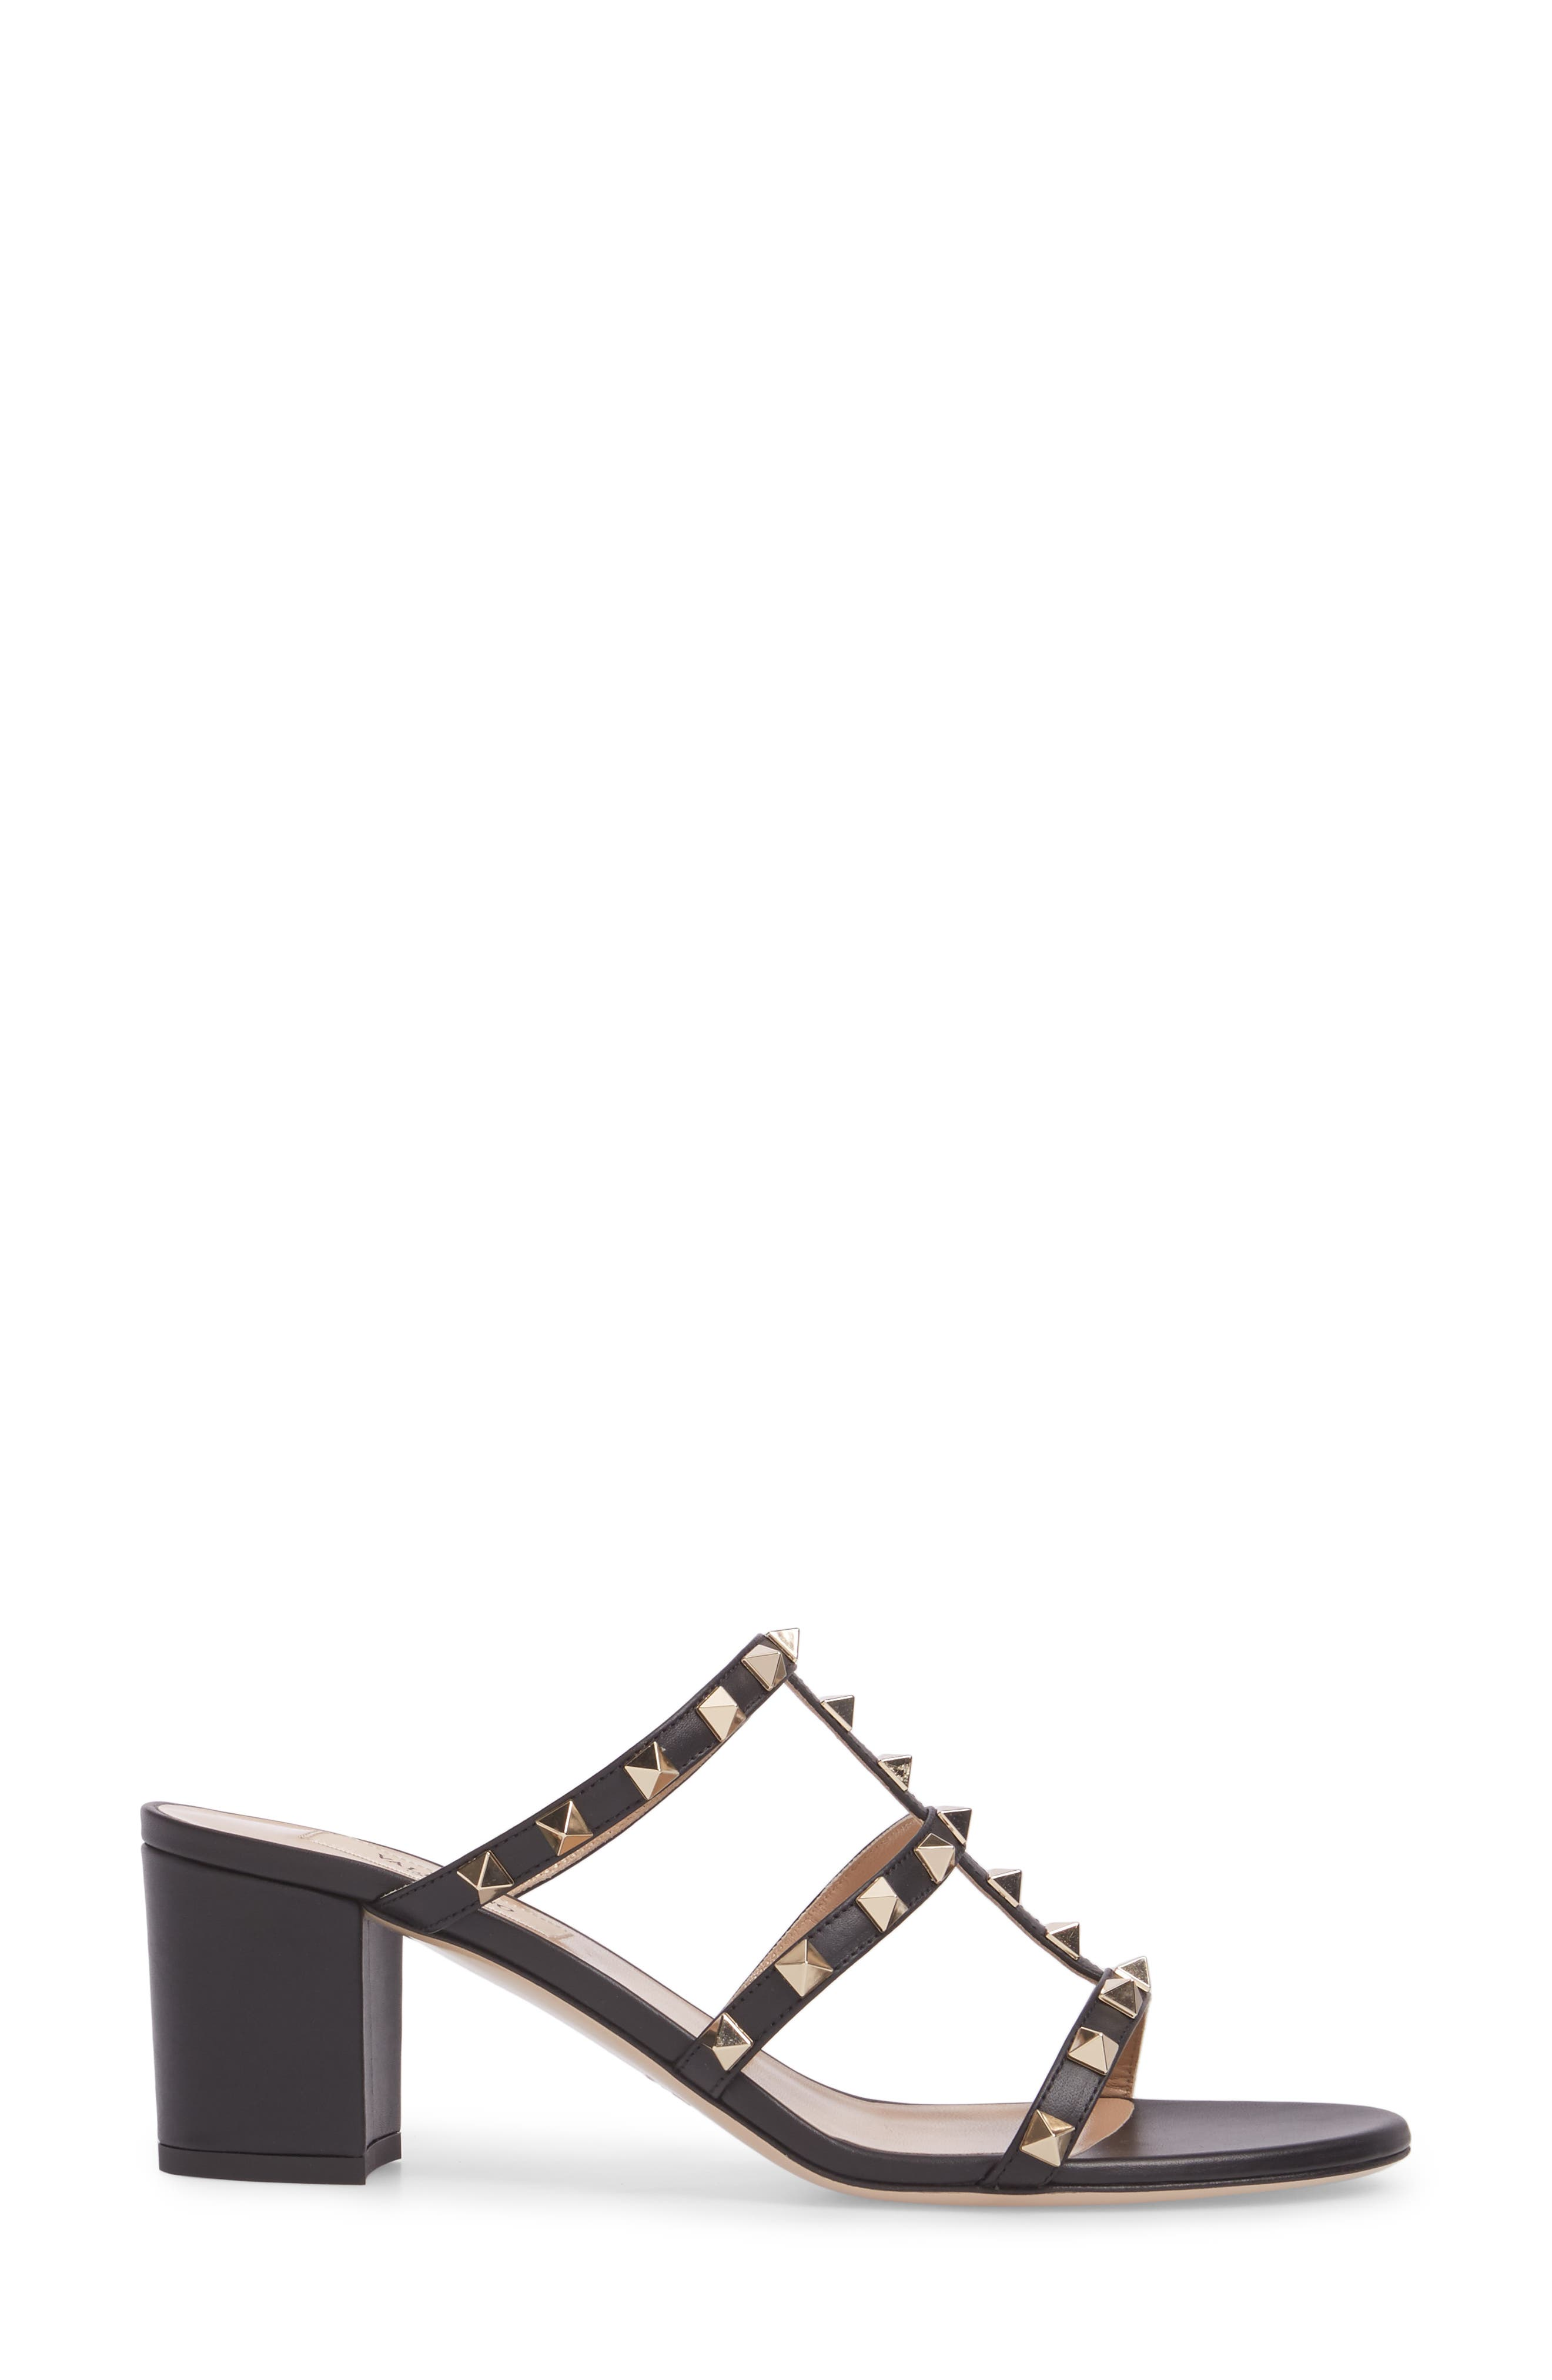 Rockstud Slide Sandal,                             Alternate thumbnail 3, color,                             002